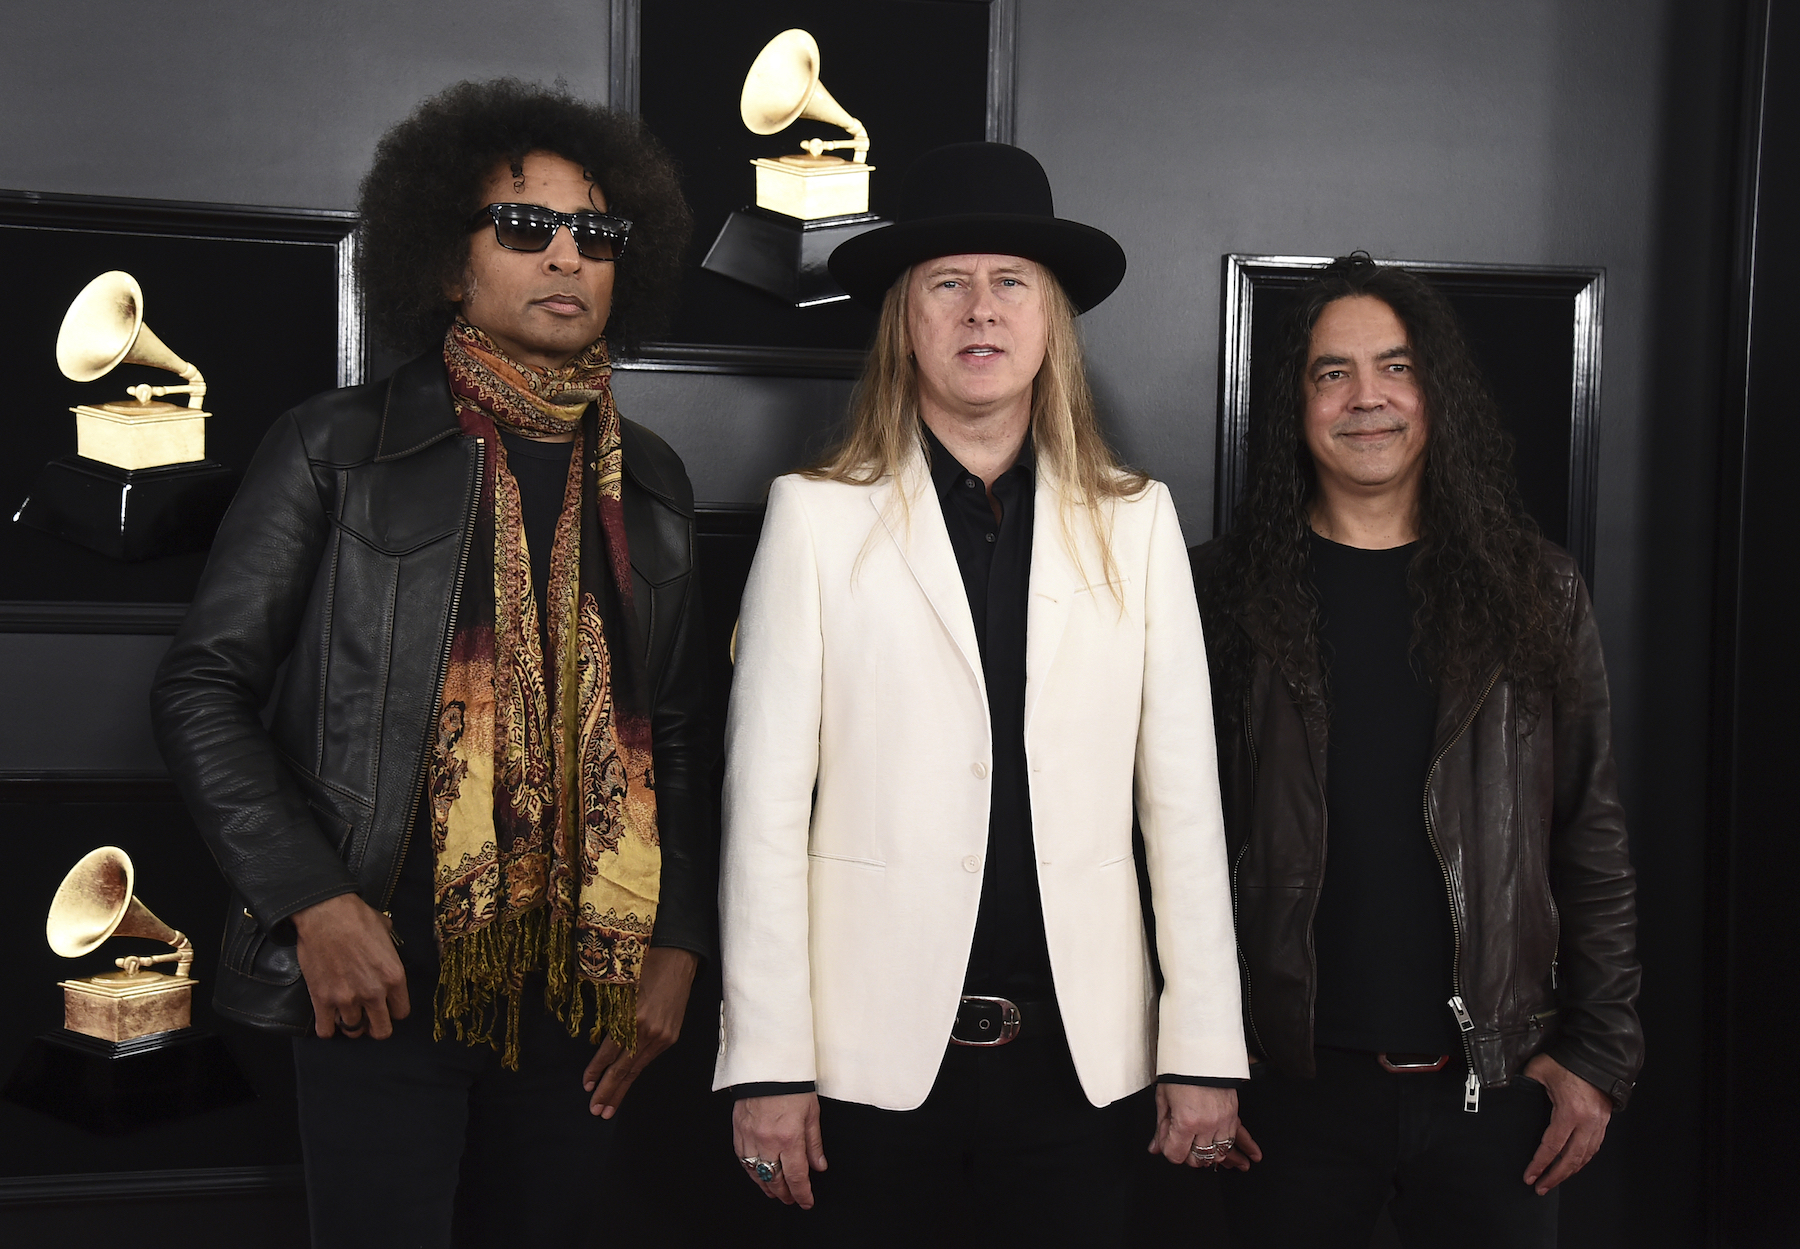 "<div class=""meta image-caption""><div class=""origin-logo origin-image ap""><span>AP</span></div><span class=""caption-text"">William DuVall, from left, Jerry Cantrell and Mike Inez of Alice in Chains arrive at the 61st annual Grammy Awards at the Staples Center on Sunday, Feb. 10, 2019, in Los Angeles. (Jordan Strauss/Invision/AP)</span></div>"